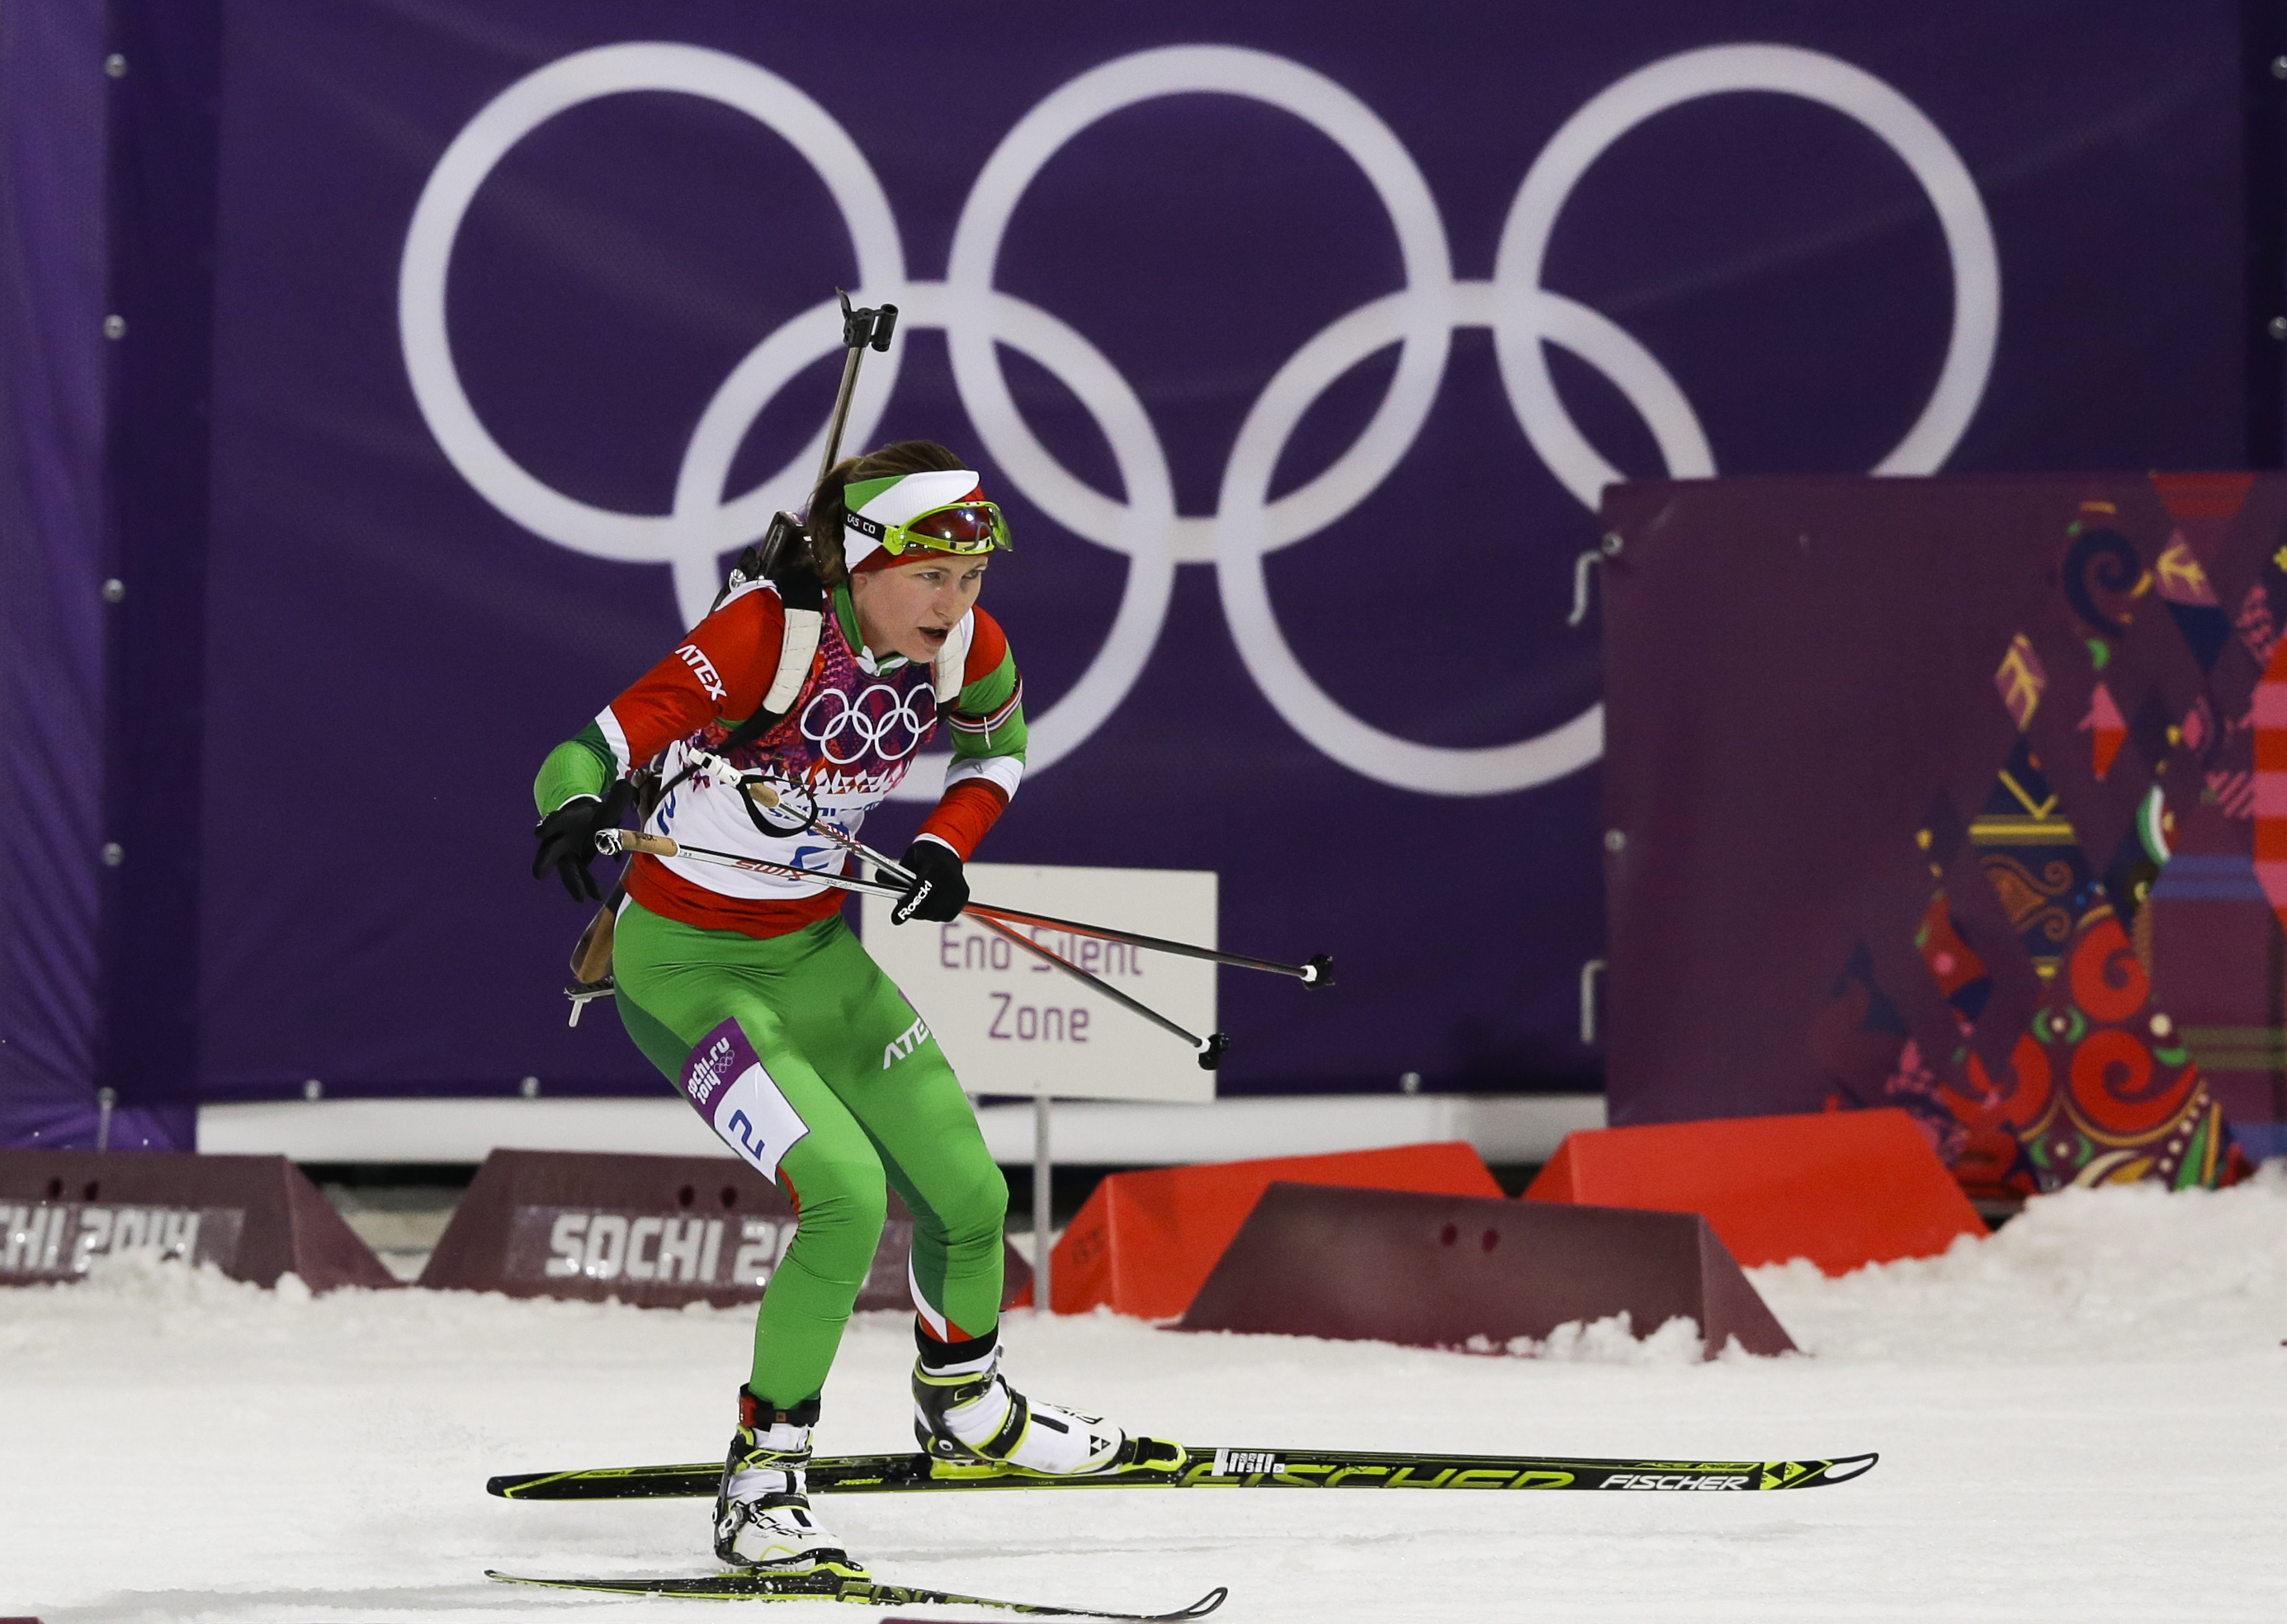 Belarus' Darya Domracheva skies on her way to win the gold medal in the women's biathlon 12.5k mass-start, at the 2014 Winter Olympics, Monday, Feb. 17, 2014, in Krasnaya Polyana, Russia. (AP Photo/Kirsty Wigglesworth)